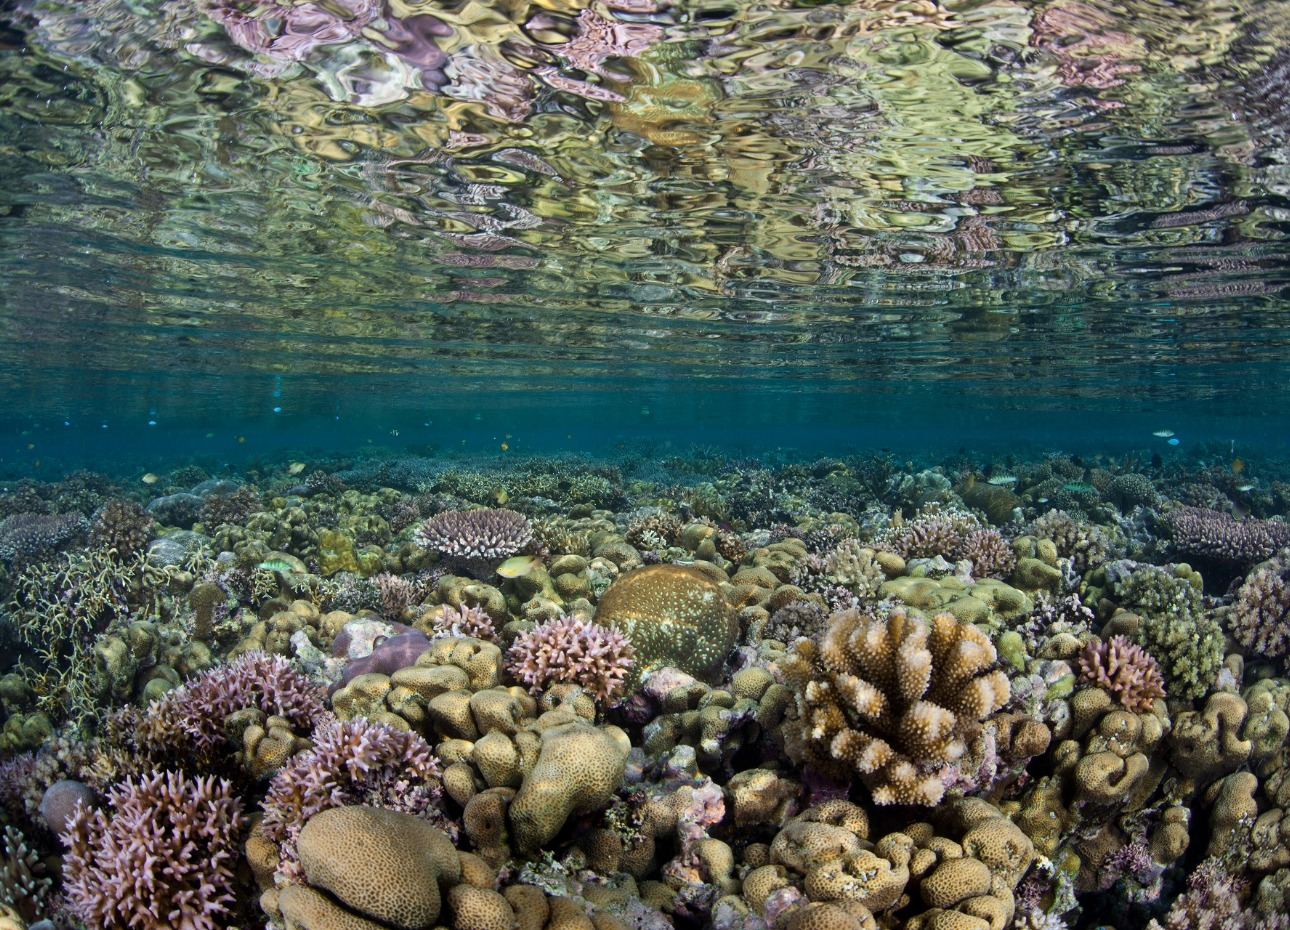 Solomon Islands, Coral Water Reflections, image